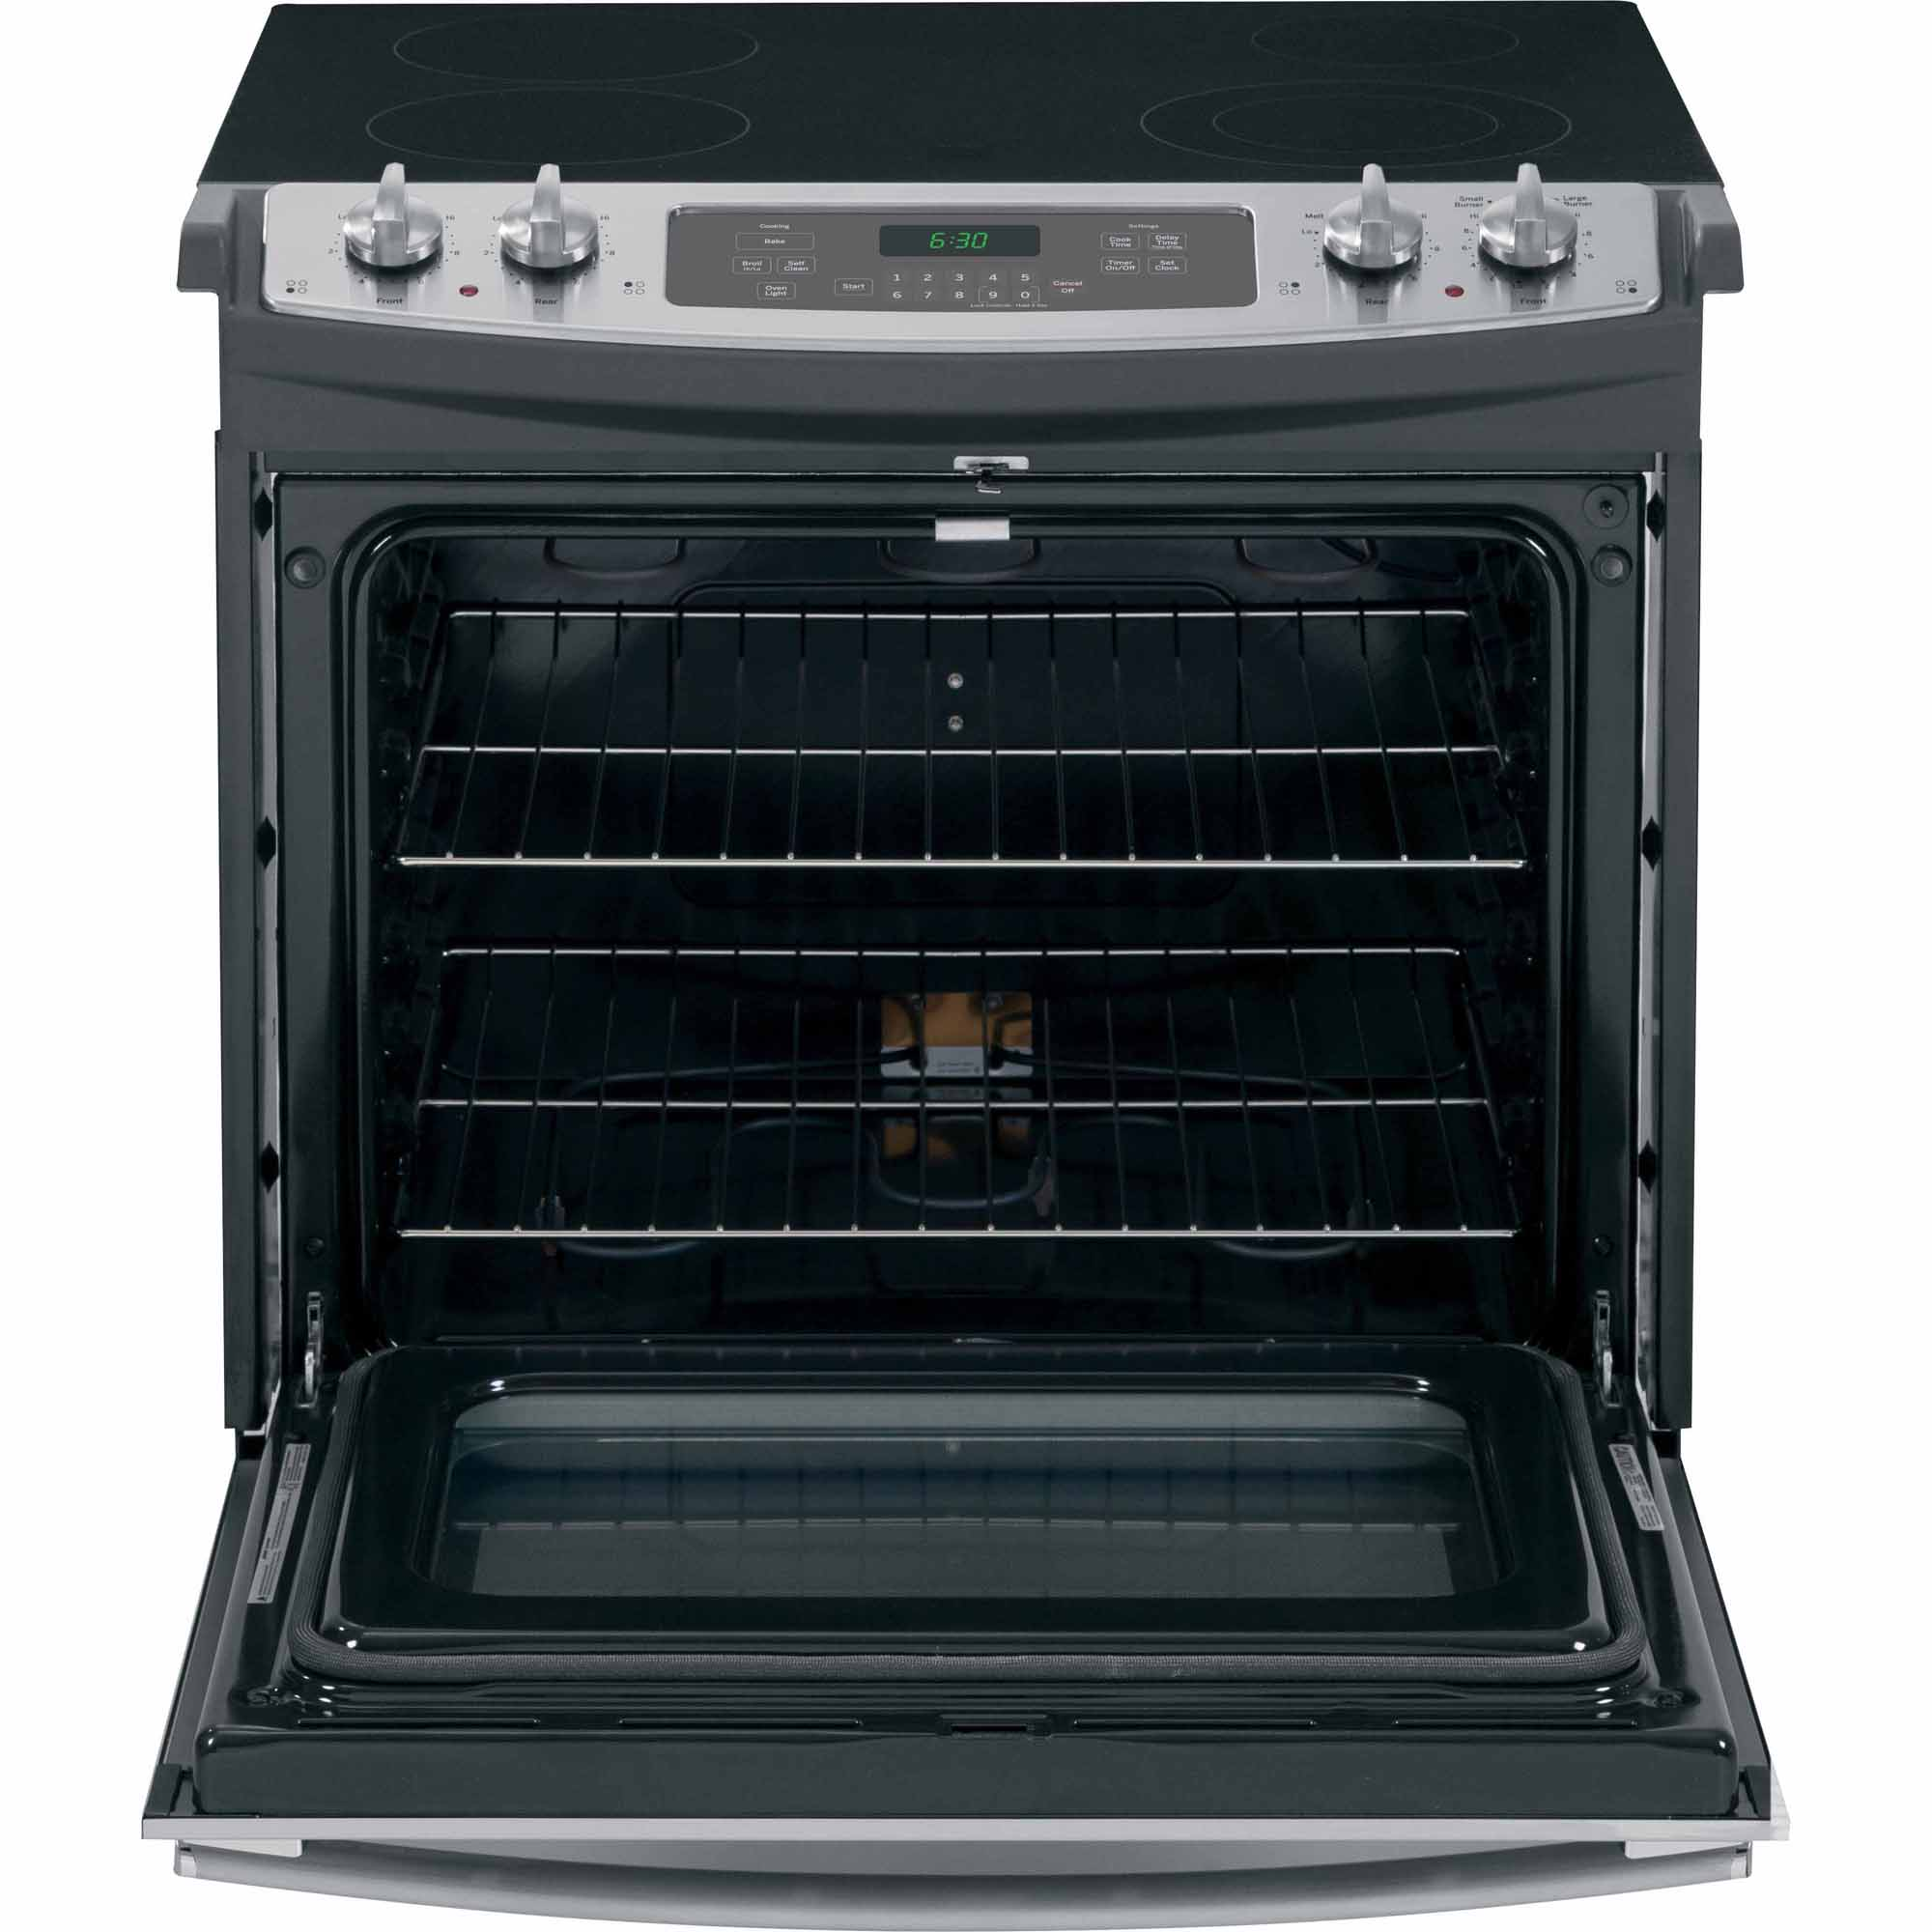 "GE Appliances JD630SFSS 30"" Drop-In Electric Range - Stainless Steel"